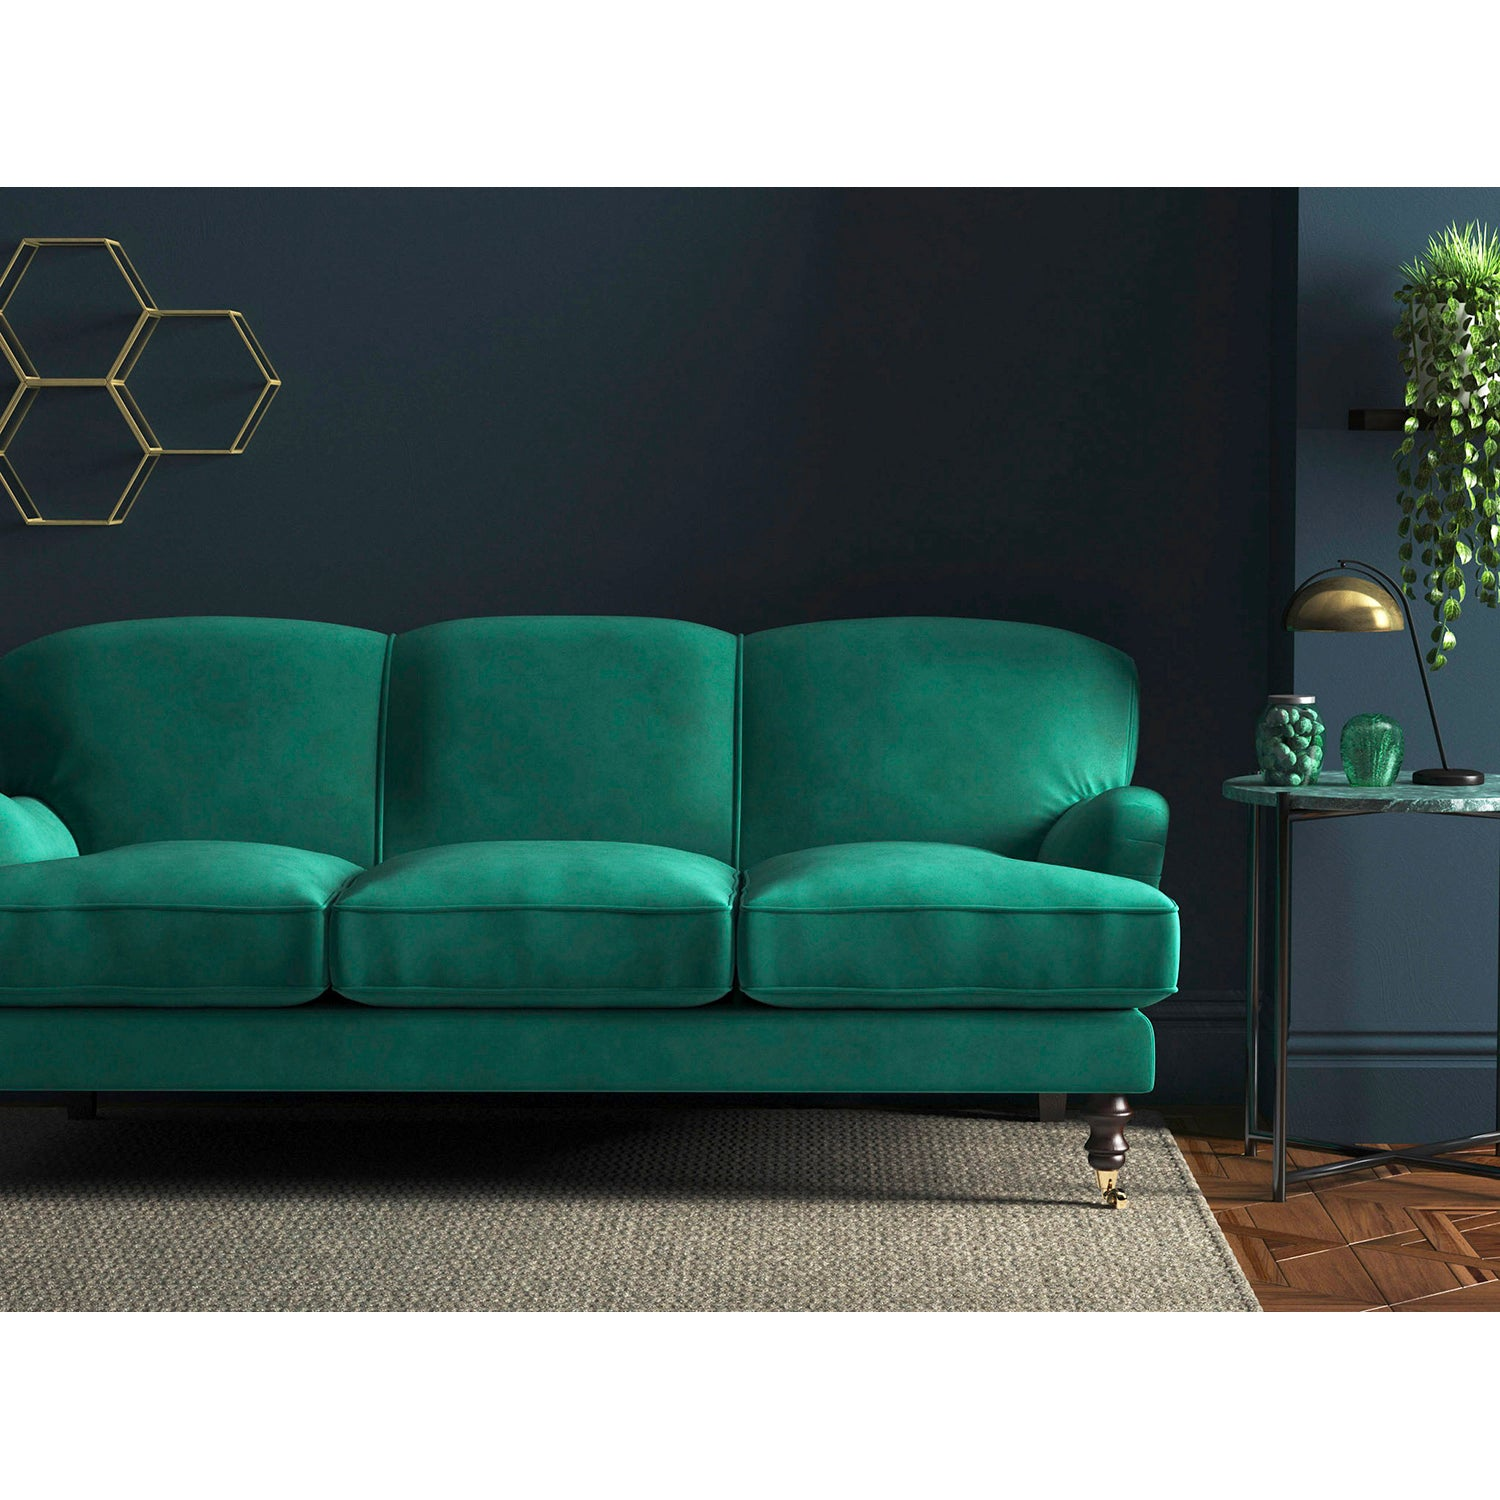 Sofa in a turquoise velvet upholstery fabric for domestic and contract use